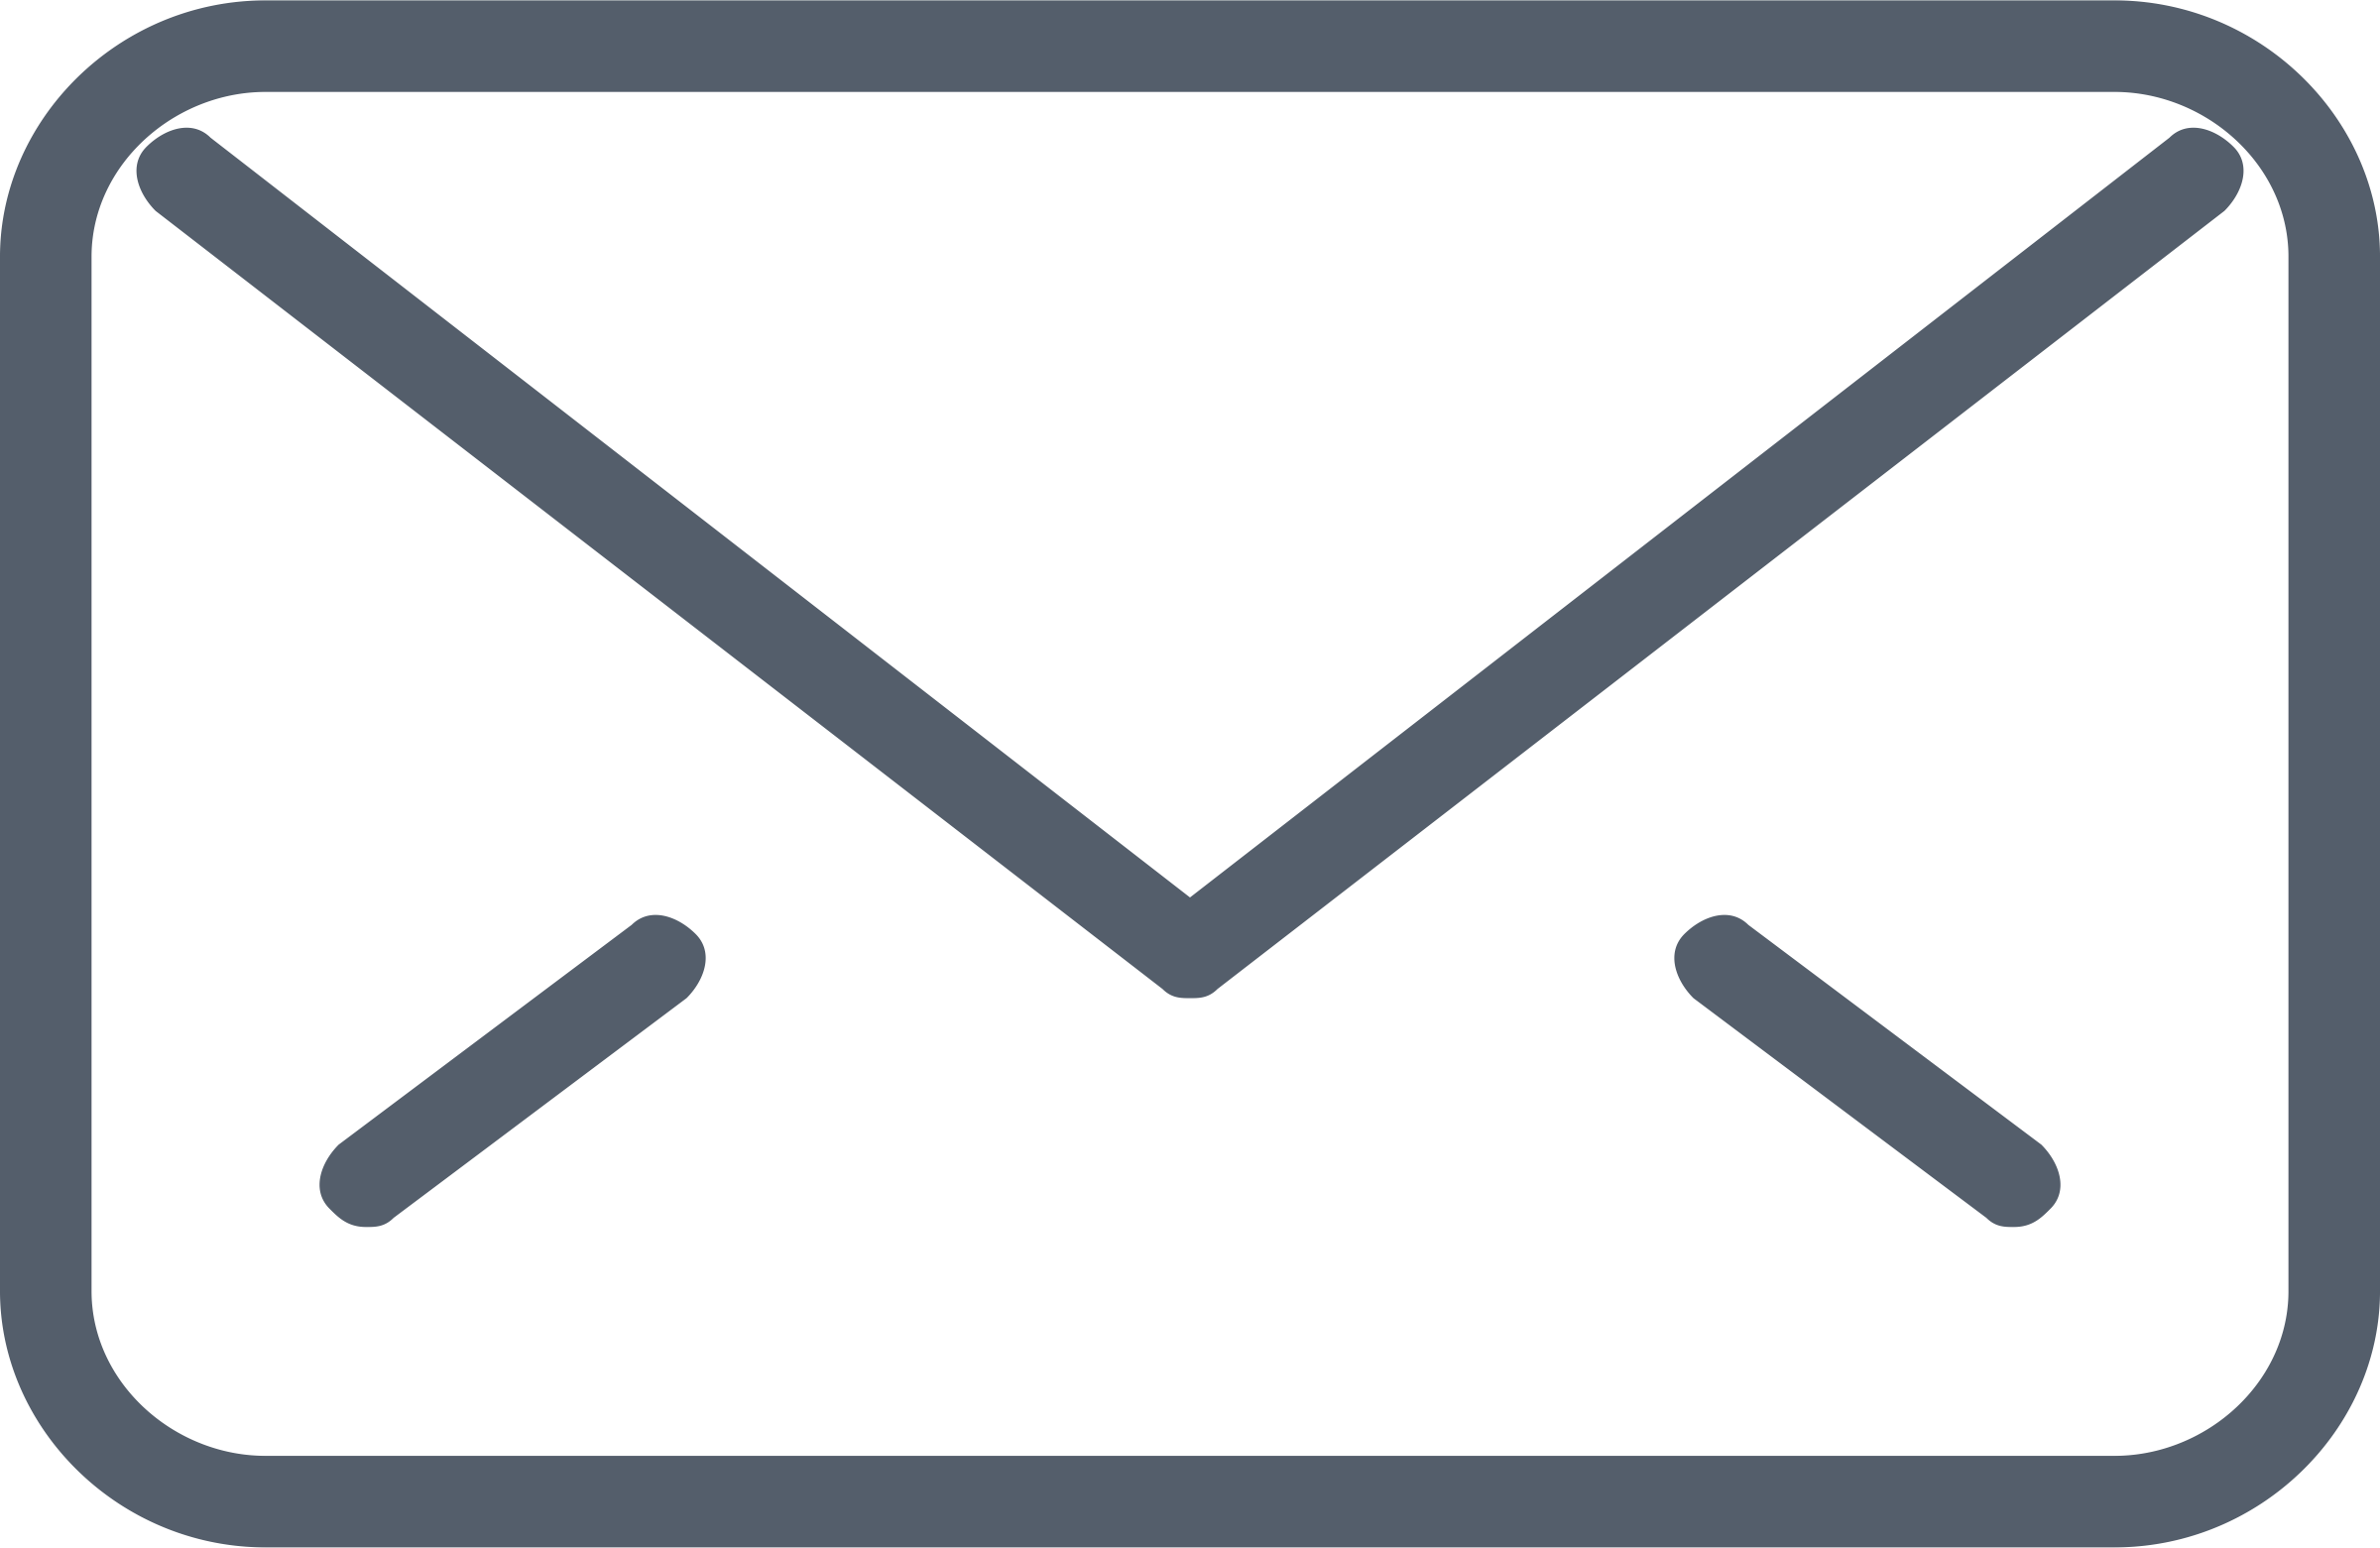 Clipart email icon